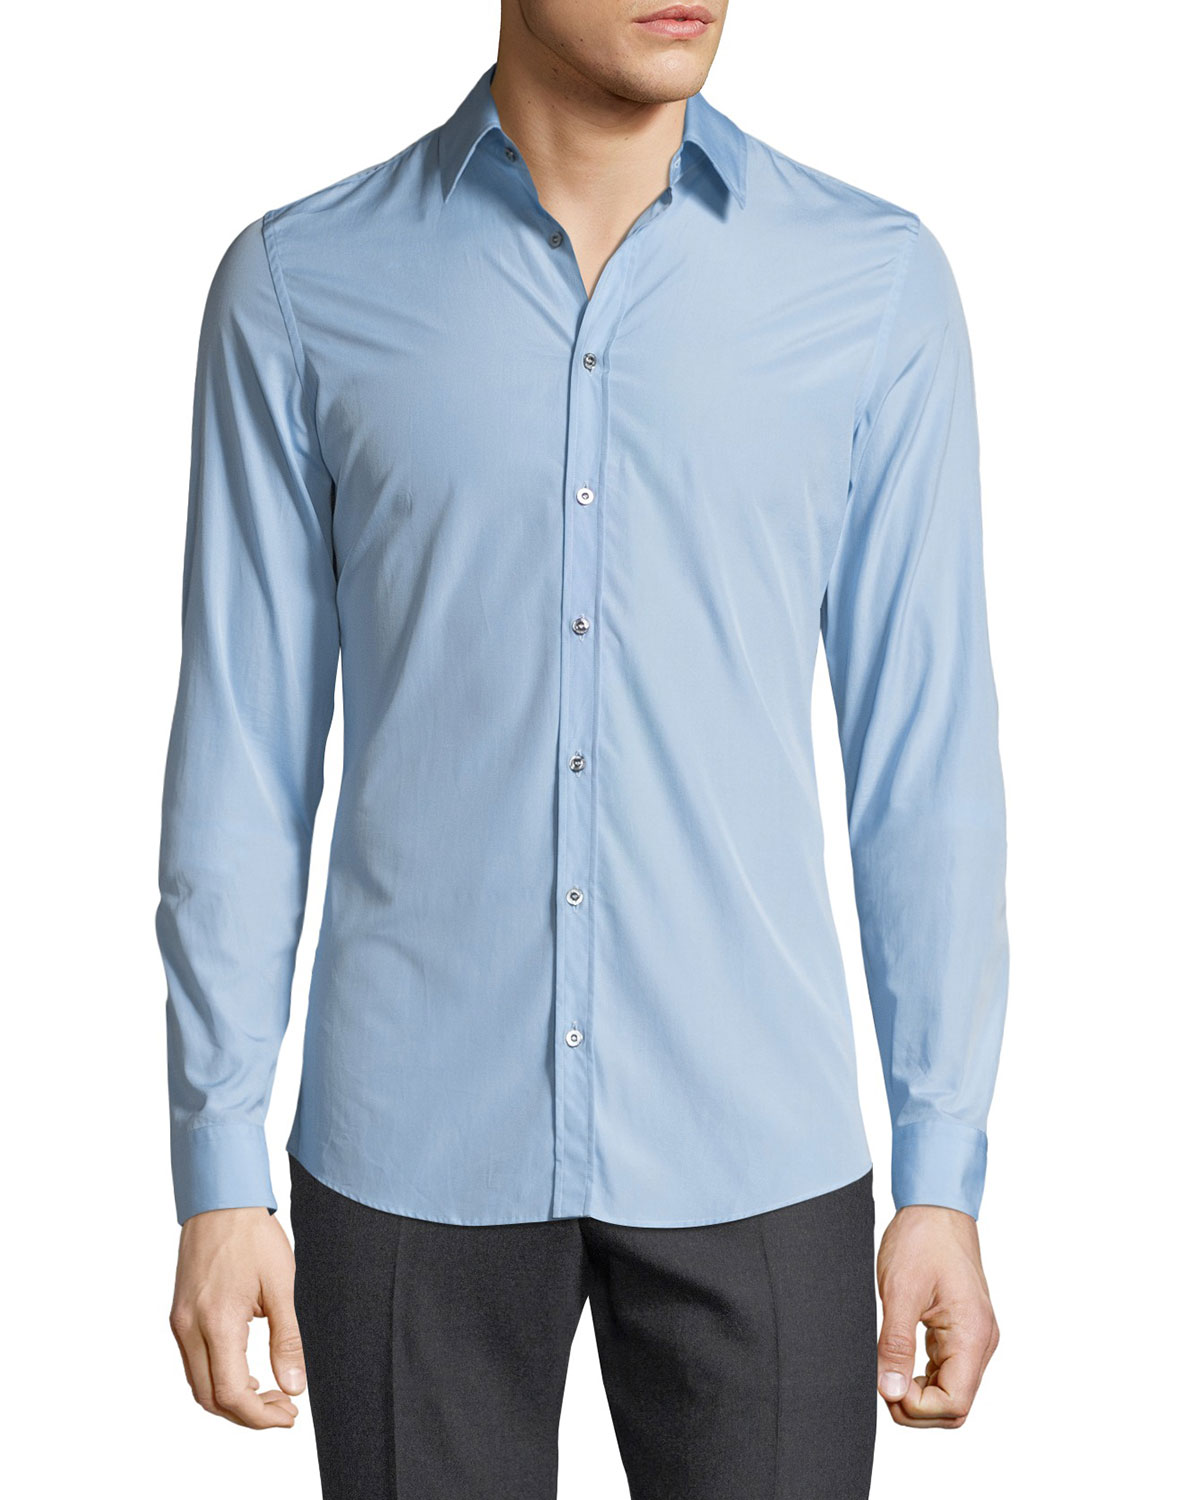 Gucci Basic Slim Fit Woven Dress Shirt Neiman Marcus